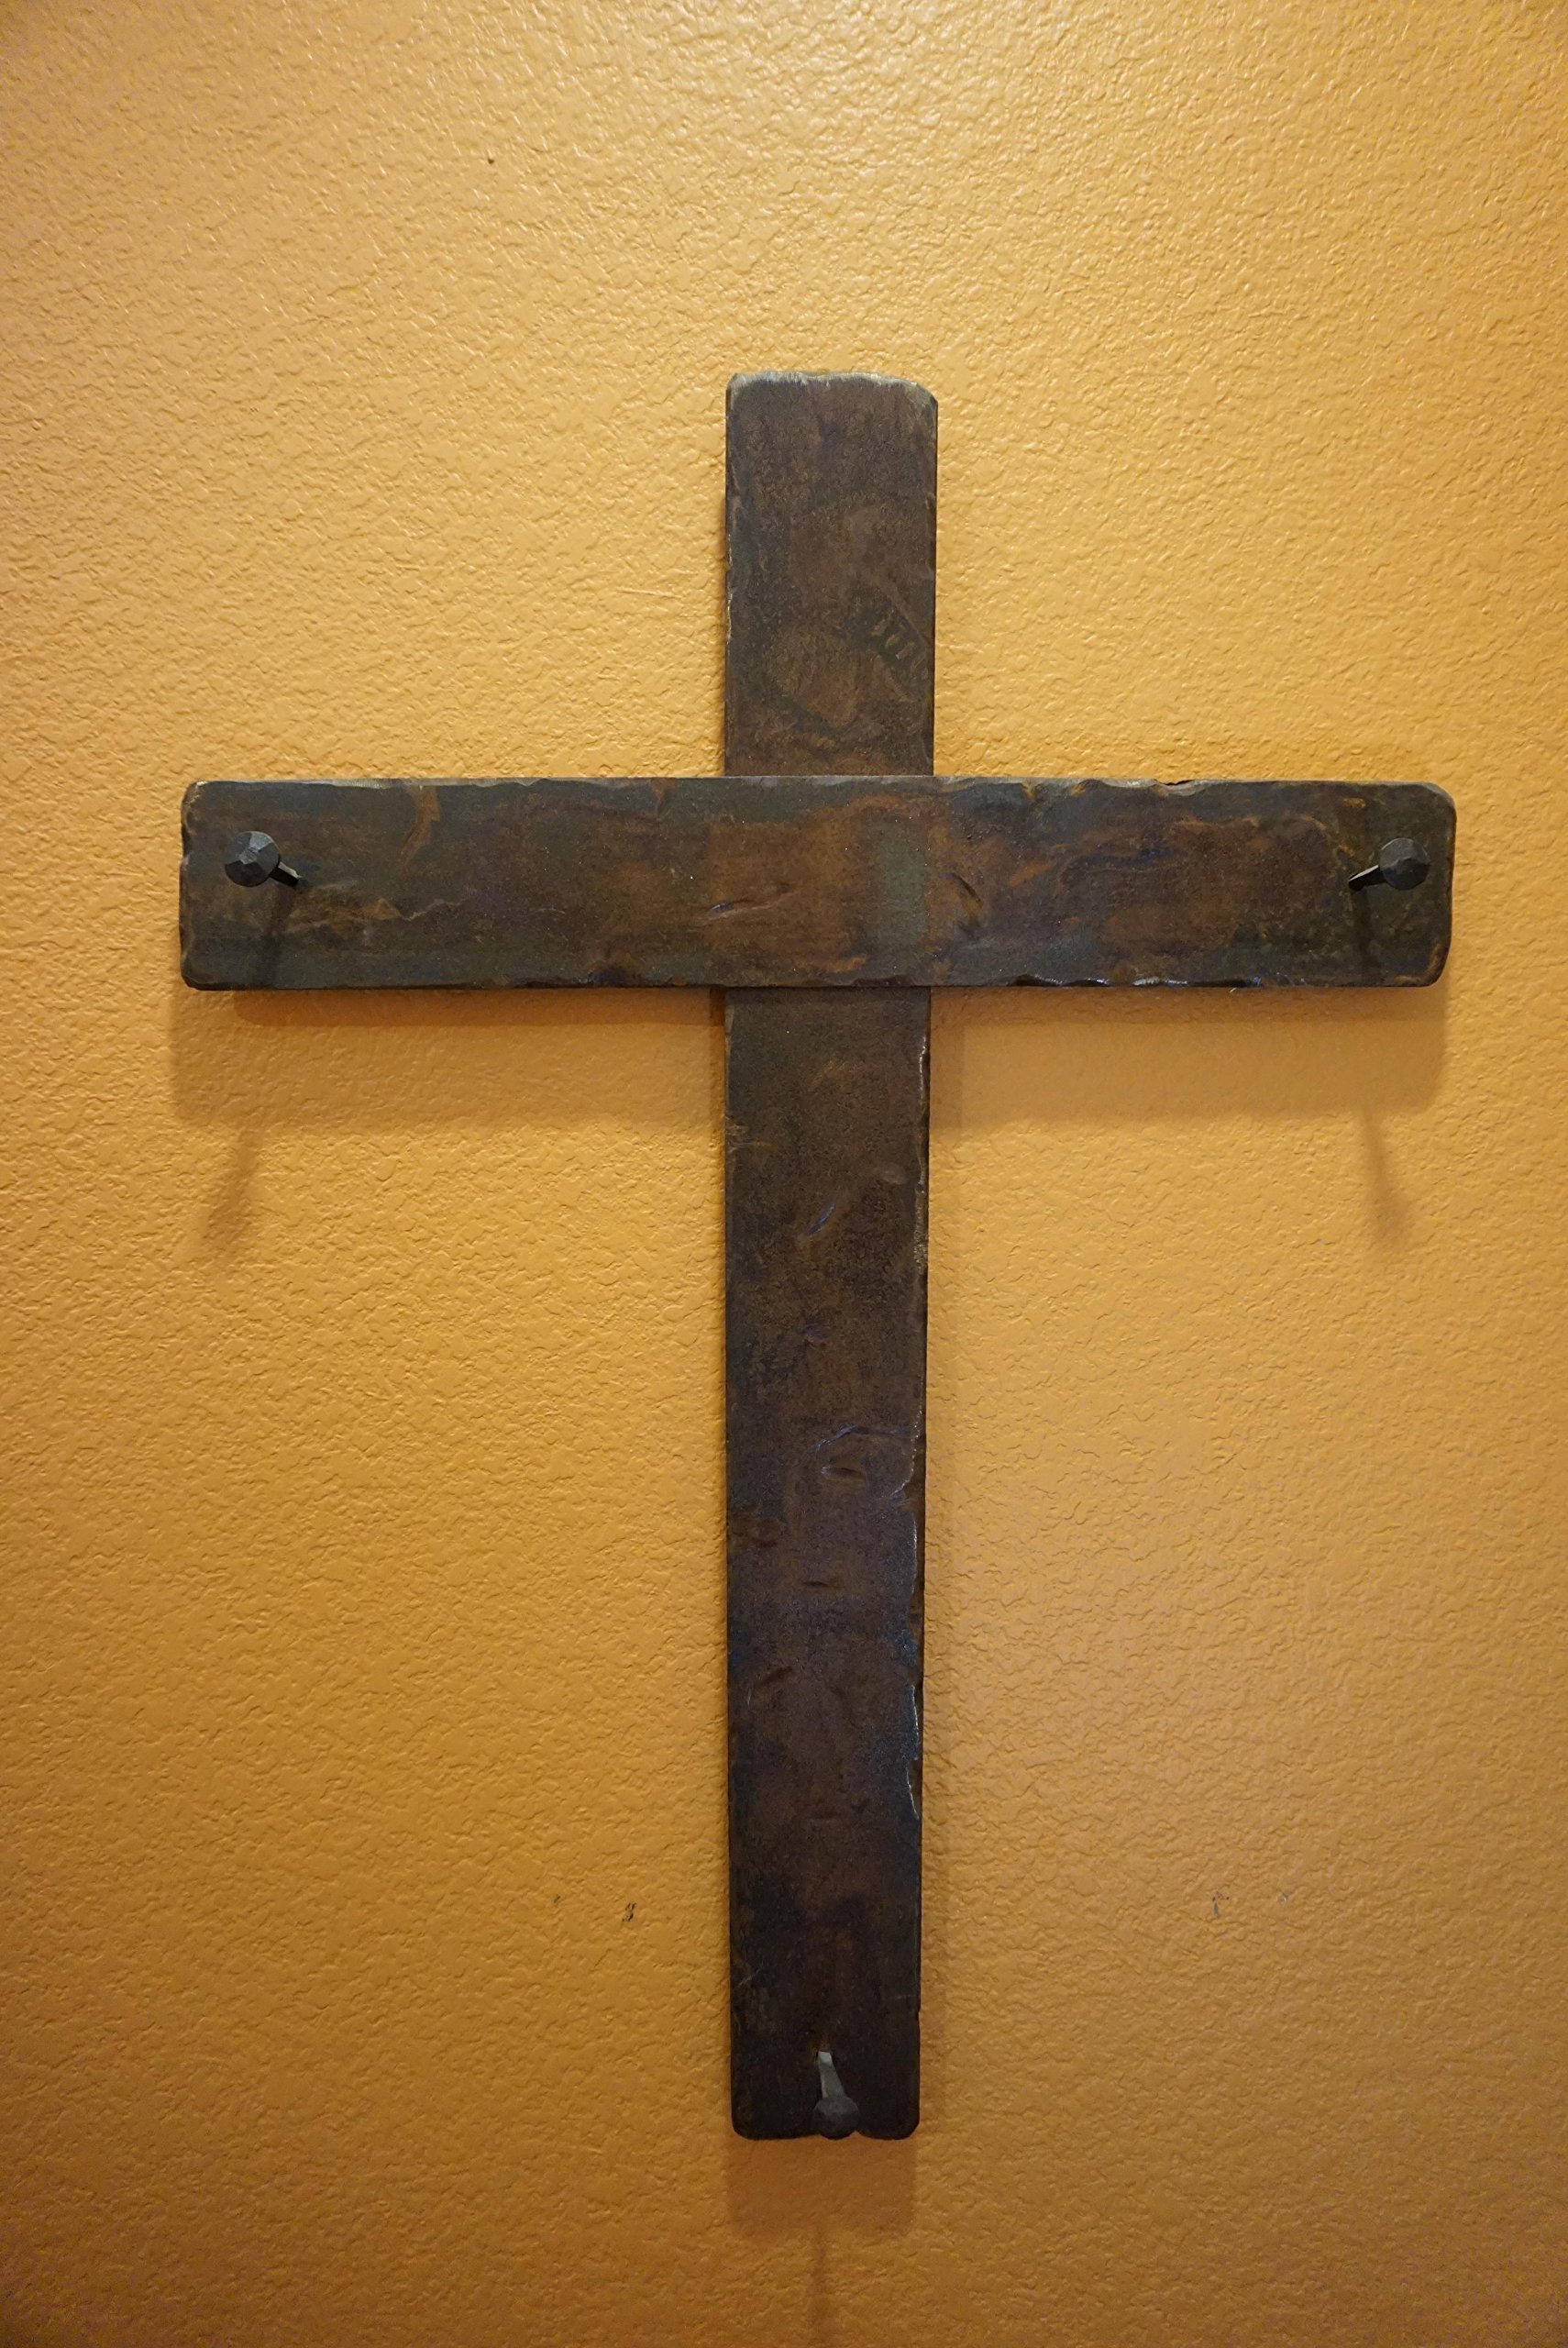 Wall Decor - Hand made one of a kind kind abstract metal cross with spikes. by Sacrifice Studios